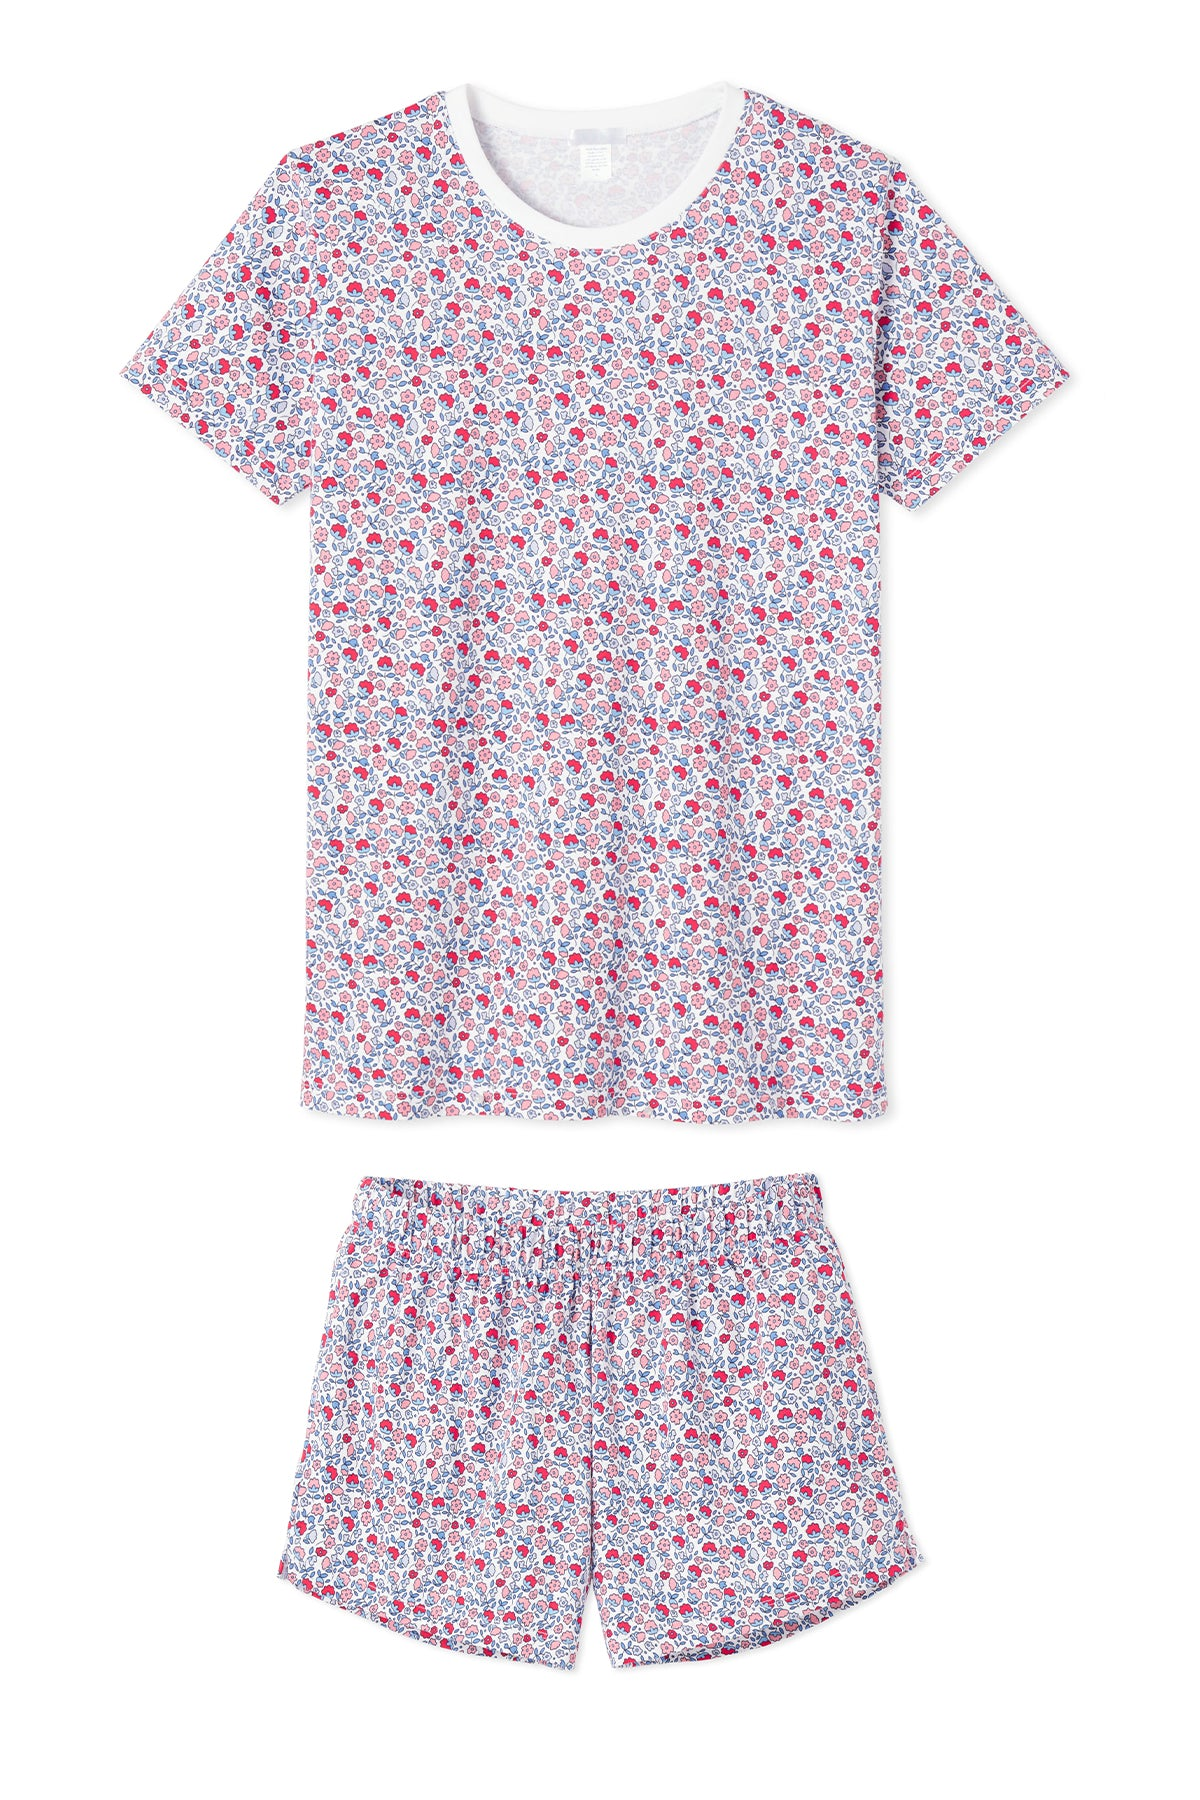 minnow x LAKE Pima Weekend Shorts Set in Americana Floral